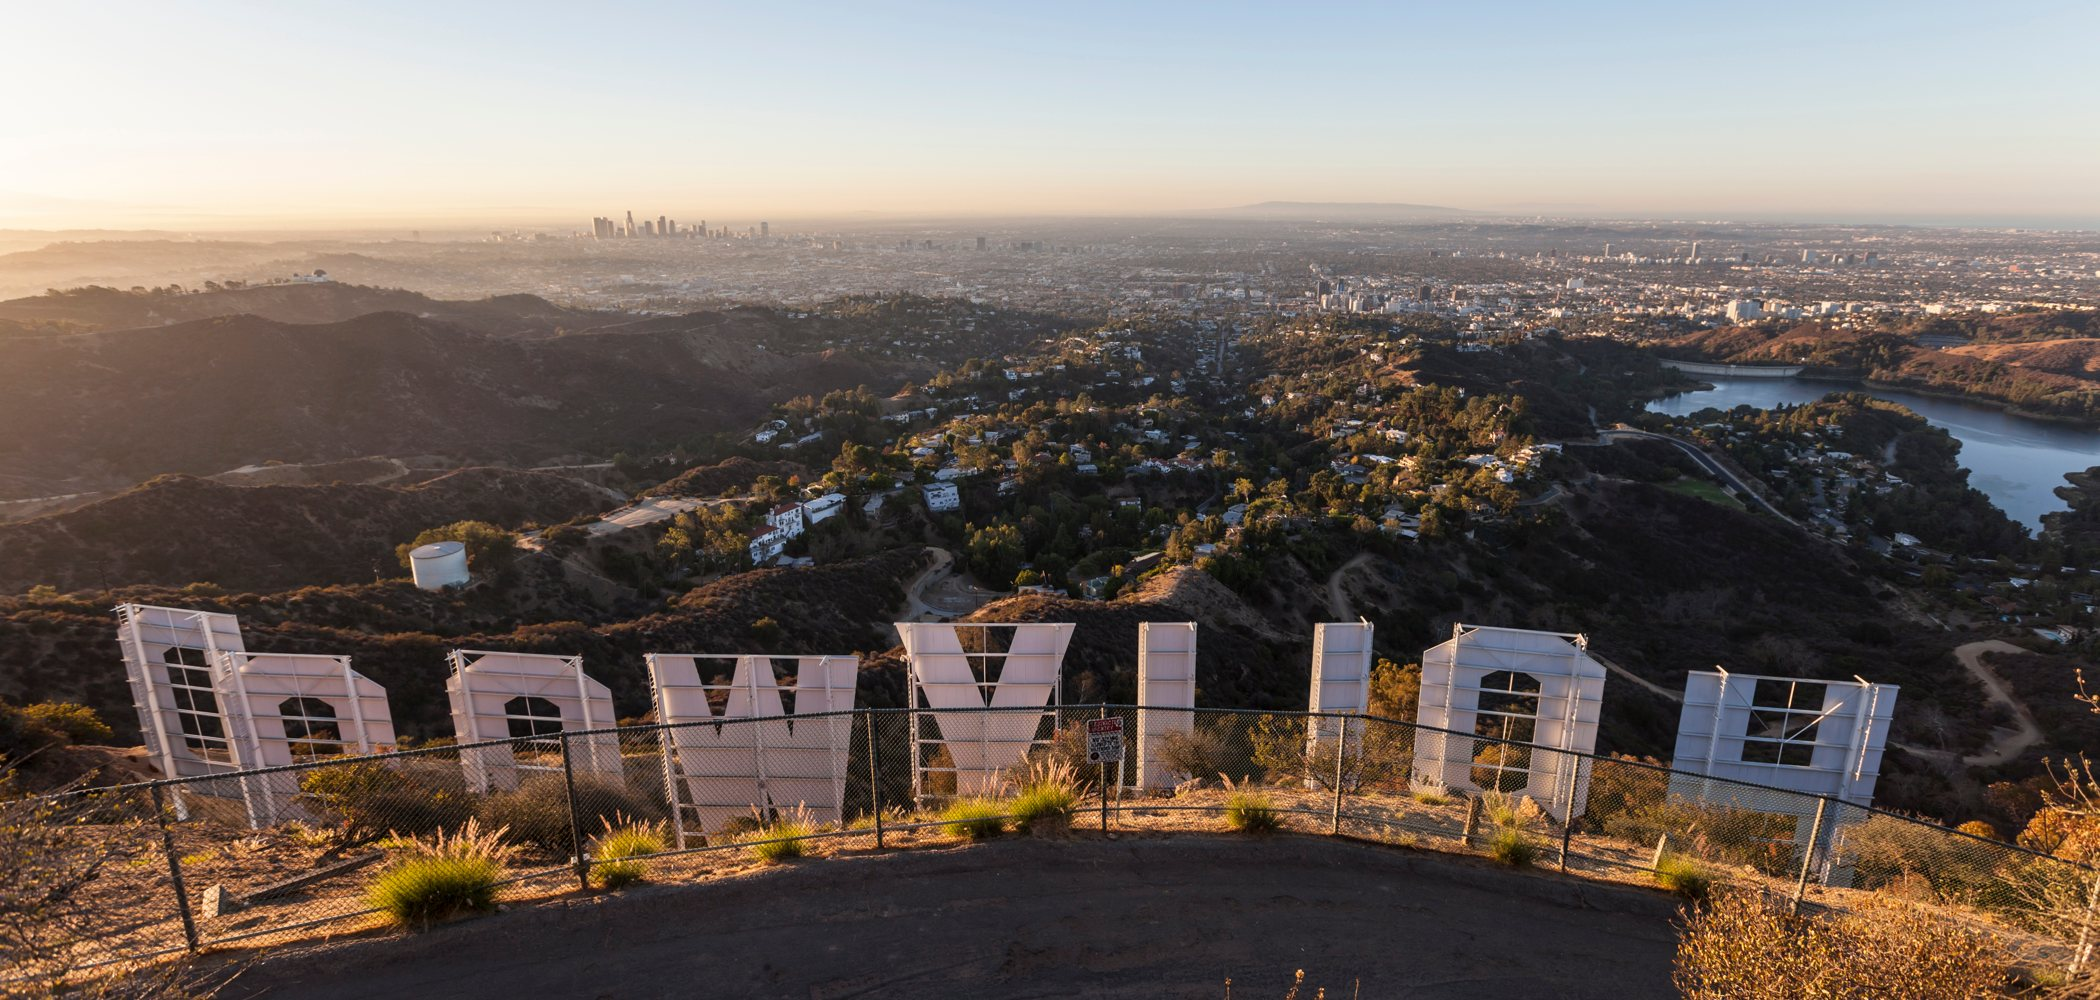 Los Angeles skyline and Hollywood sign